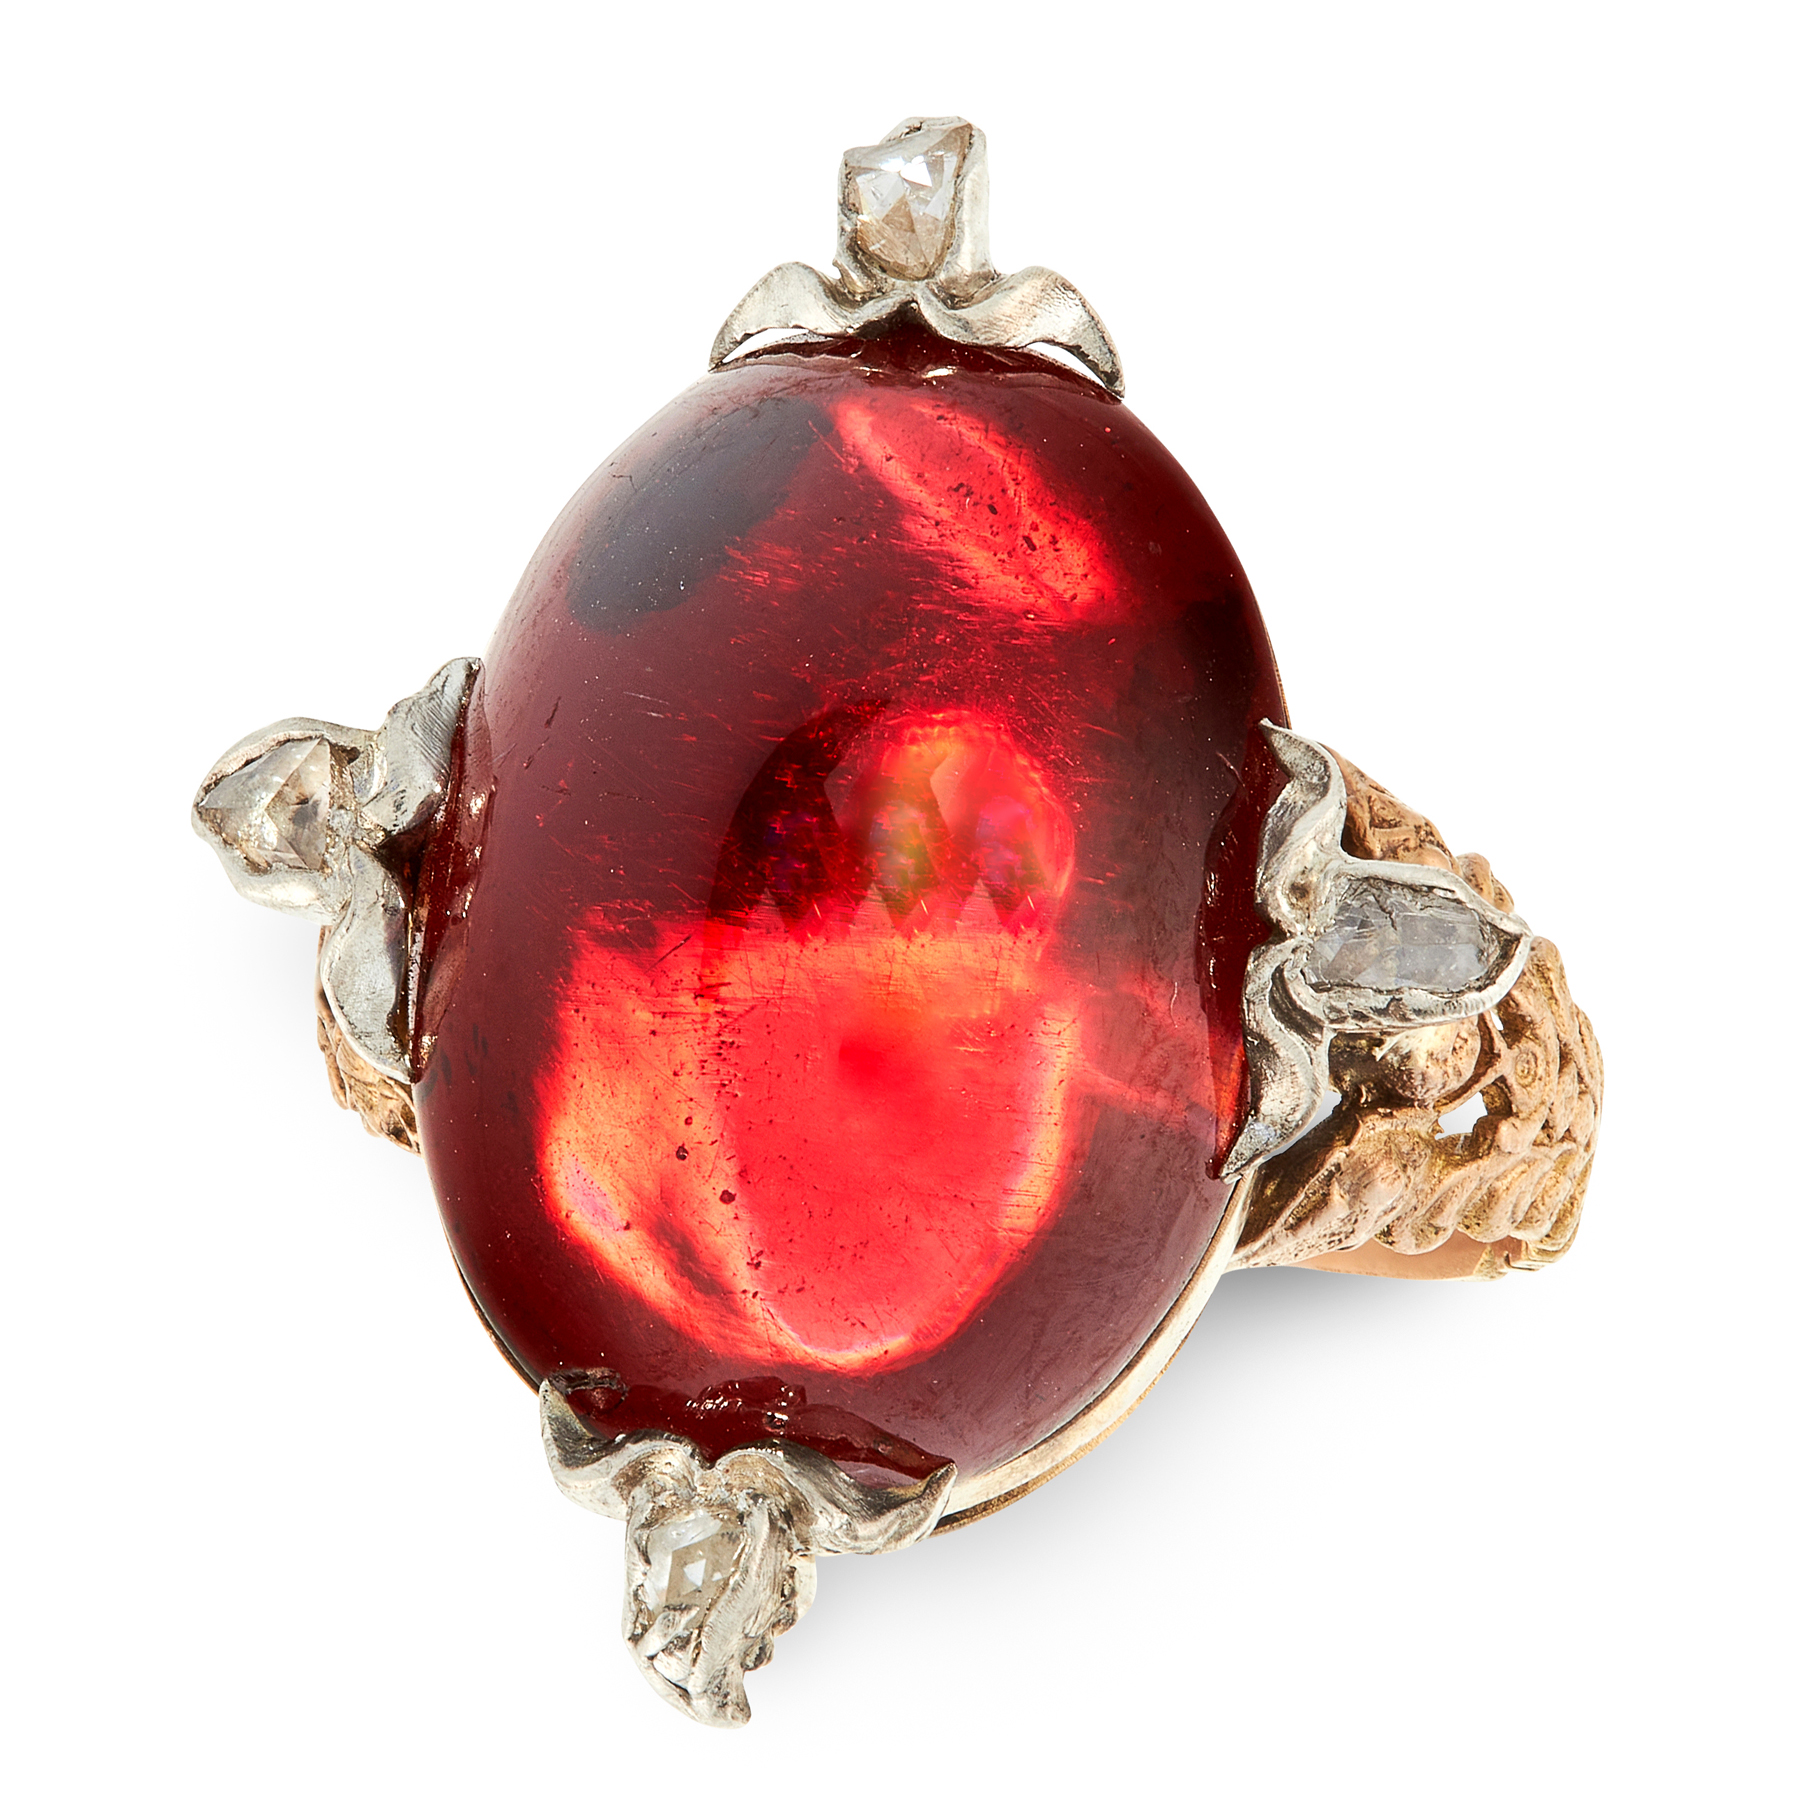 AN ANTIQUE GARNET AND DIAMOND RING in yellow gold and silver, set with an oval cabochon garnet - Image 2 of 2